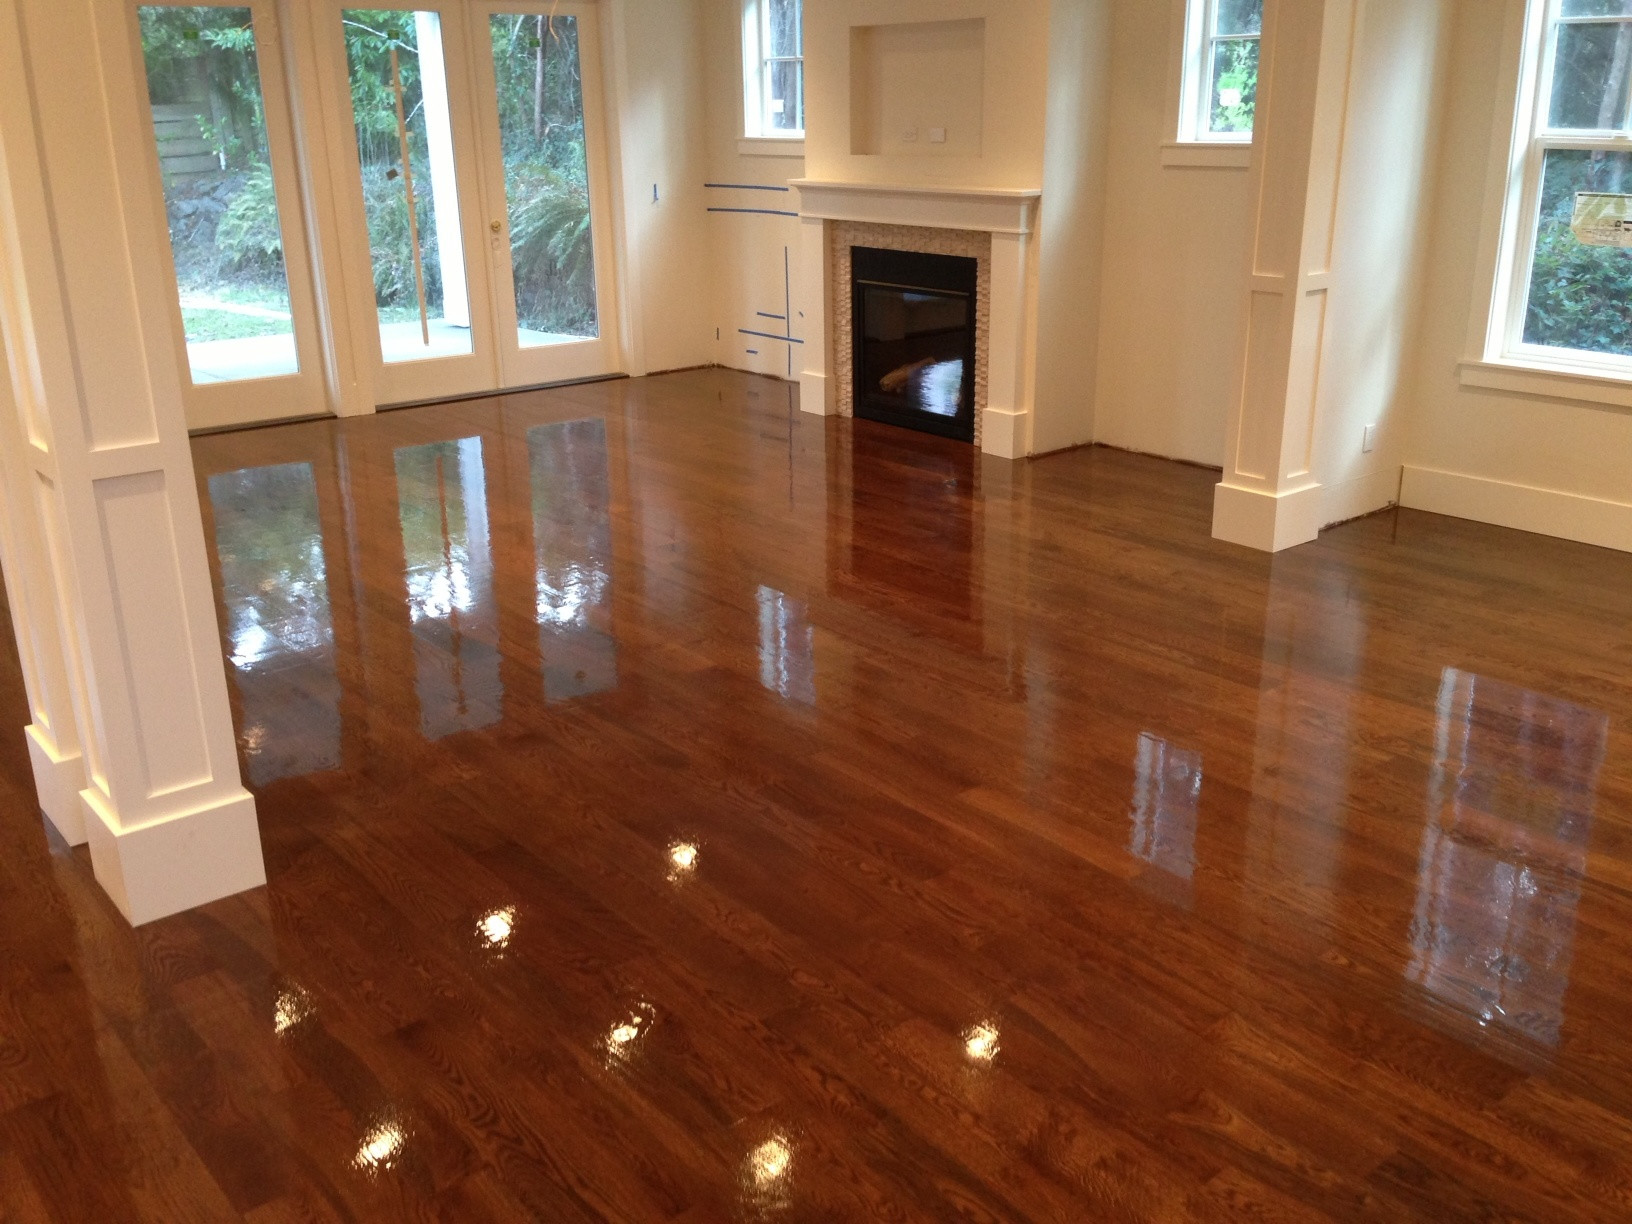 hardwood flooring ajax pickering of core cleaning by empress in renew hardwood